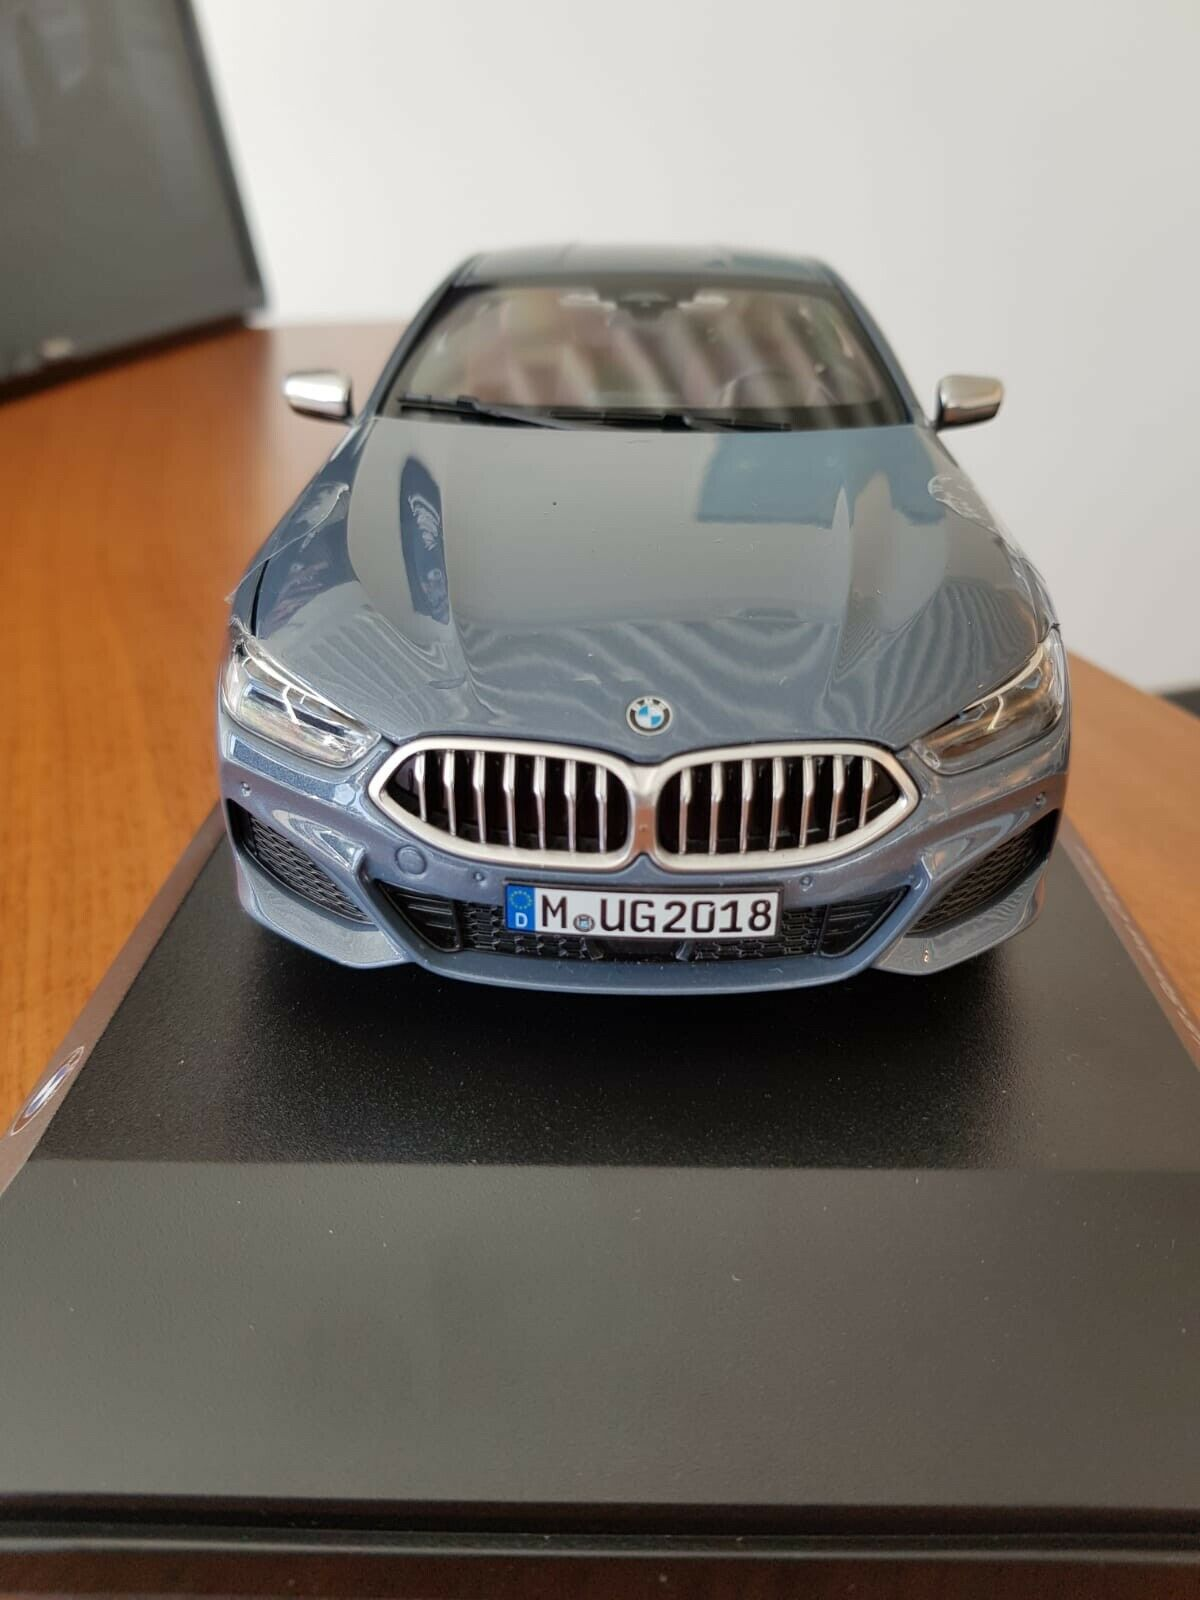 BMW 8er Coupe 1 18 Barcelona bluee scale 1 18